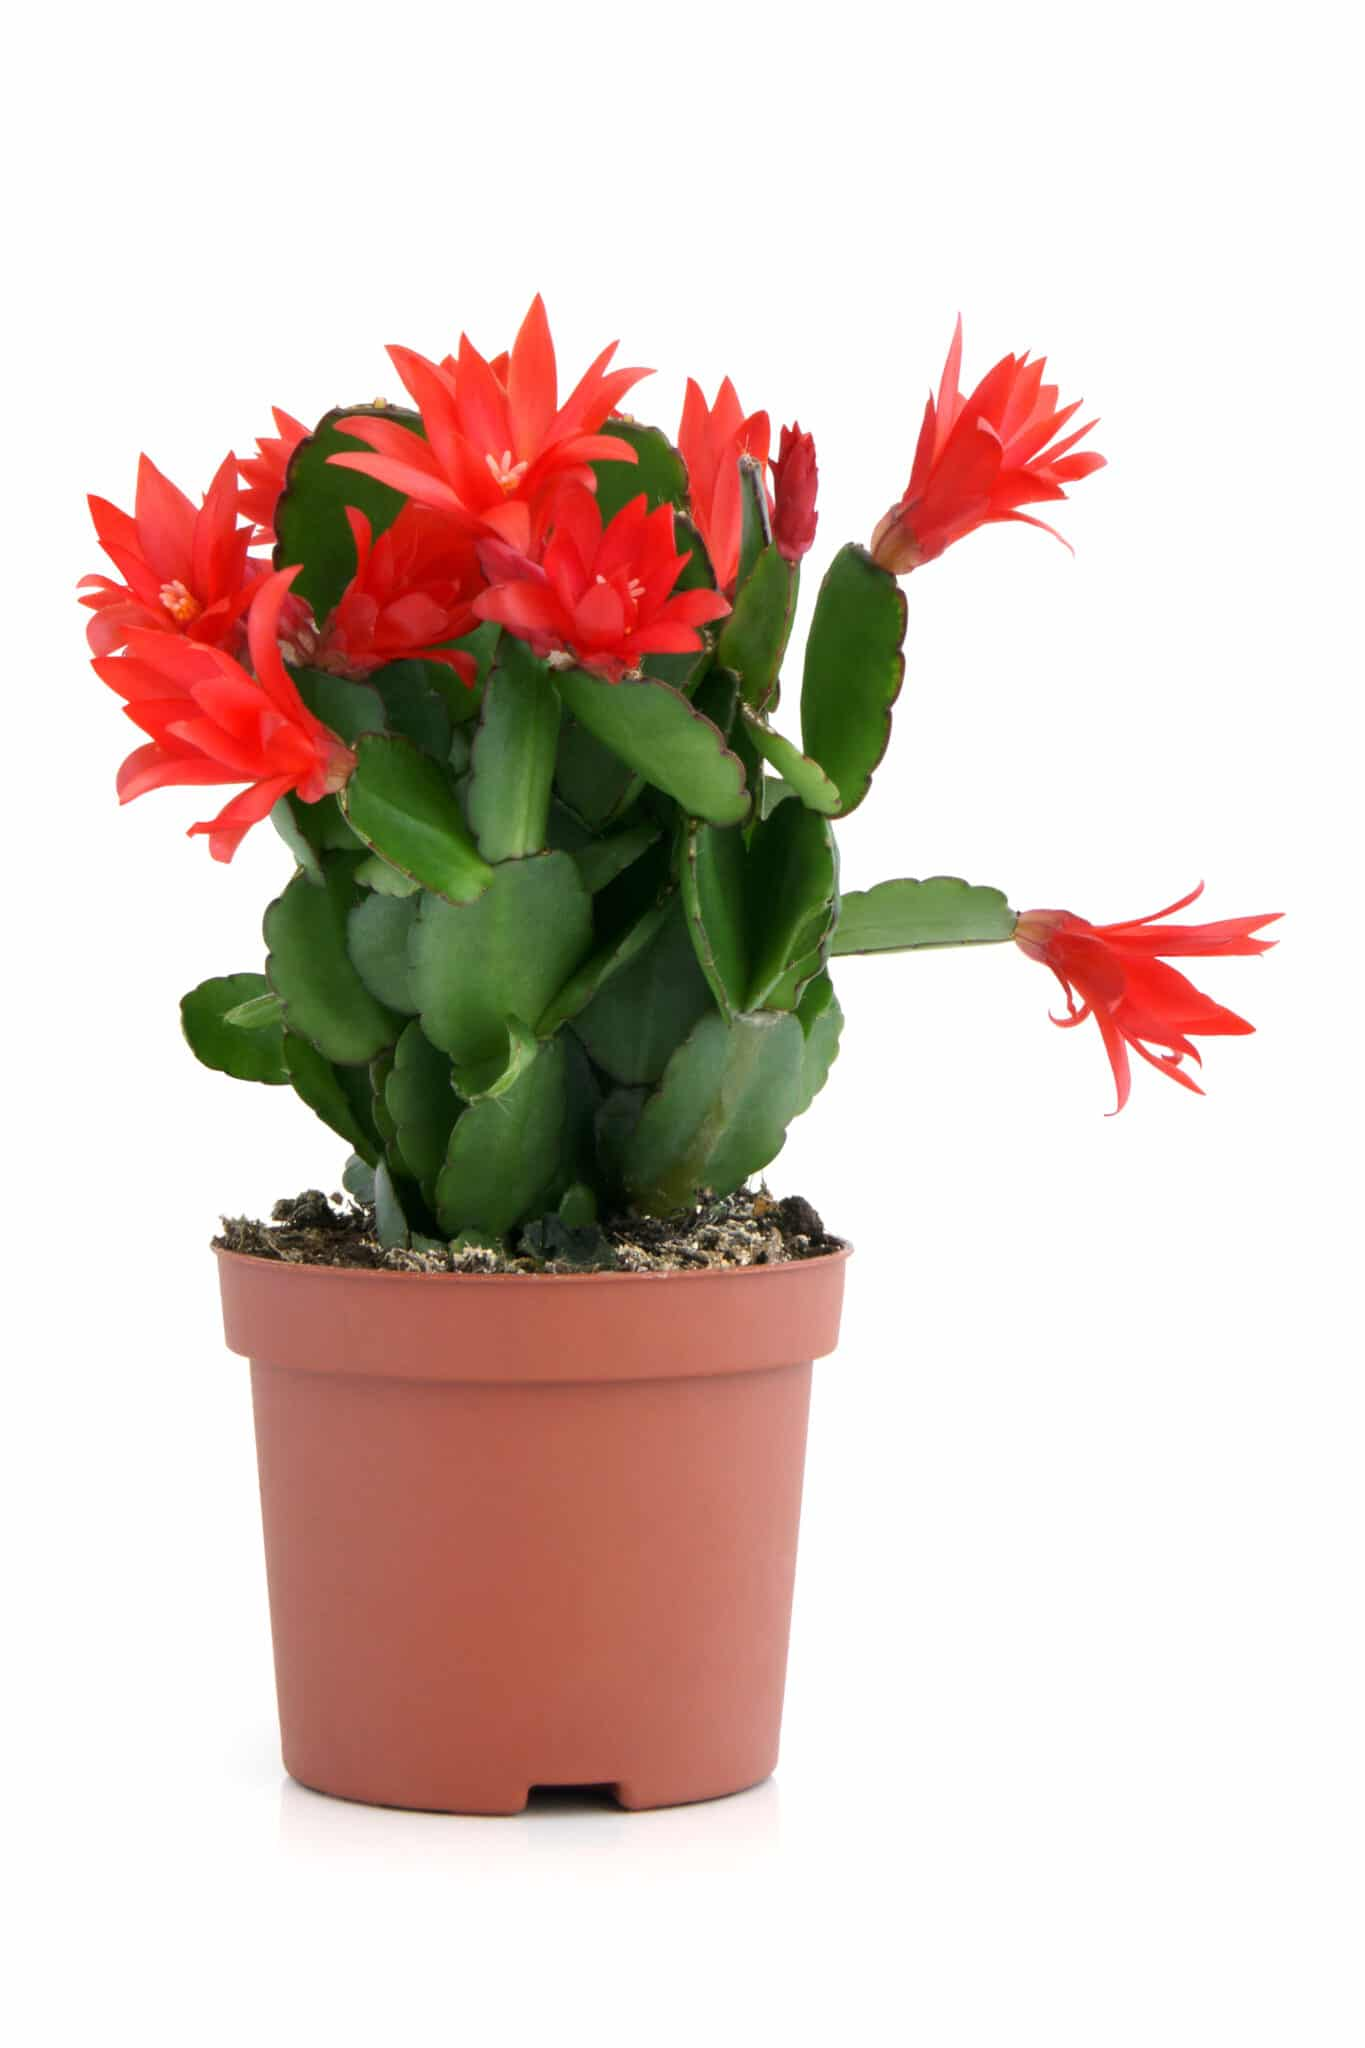 A Christmas cactus with bright red blooms.